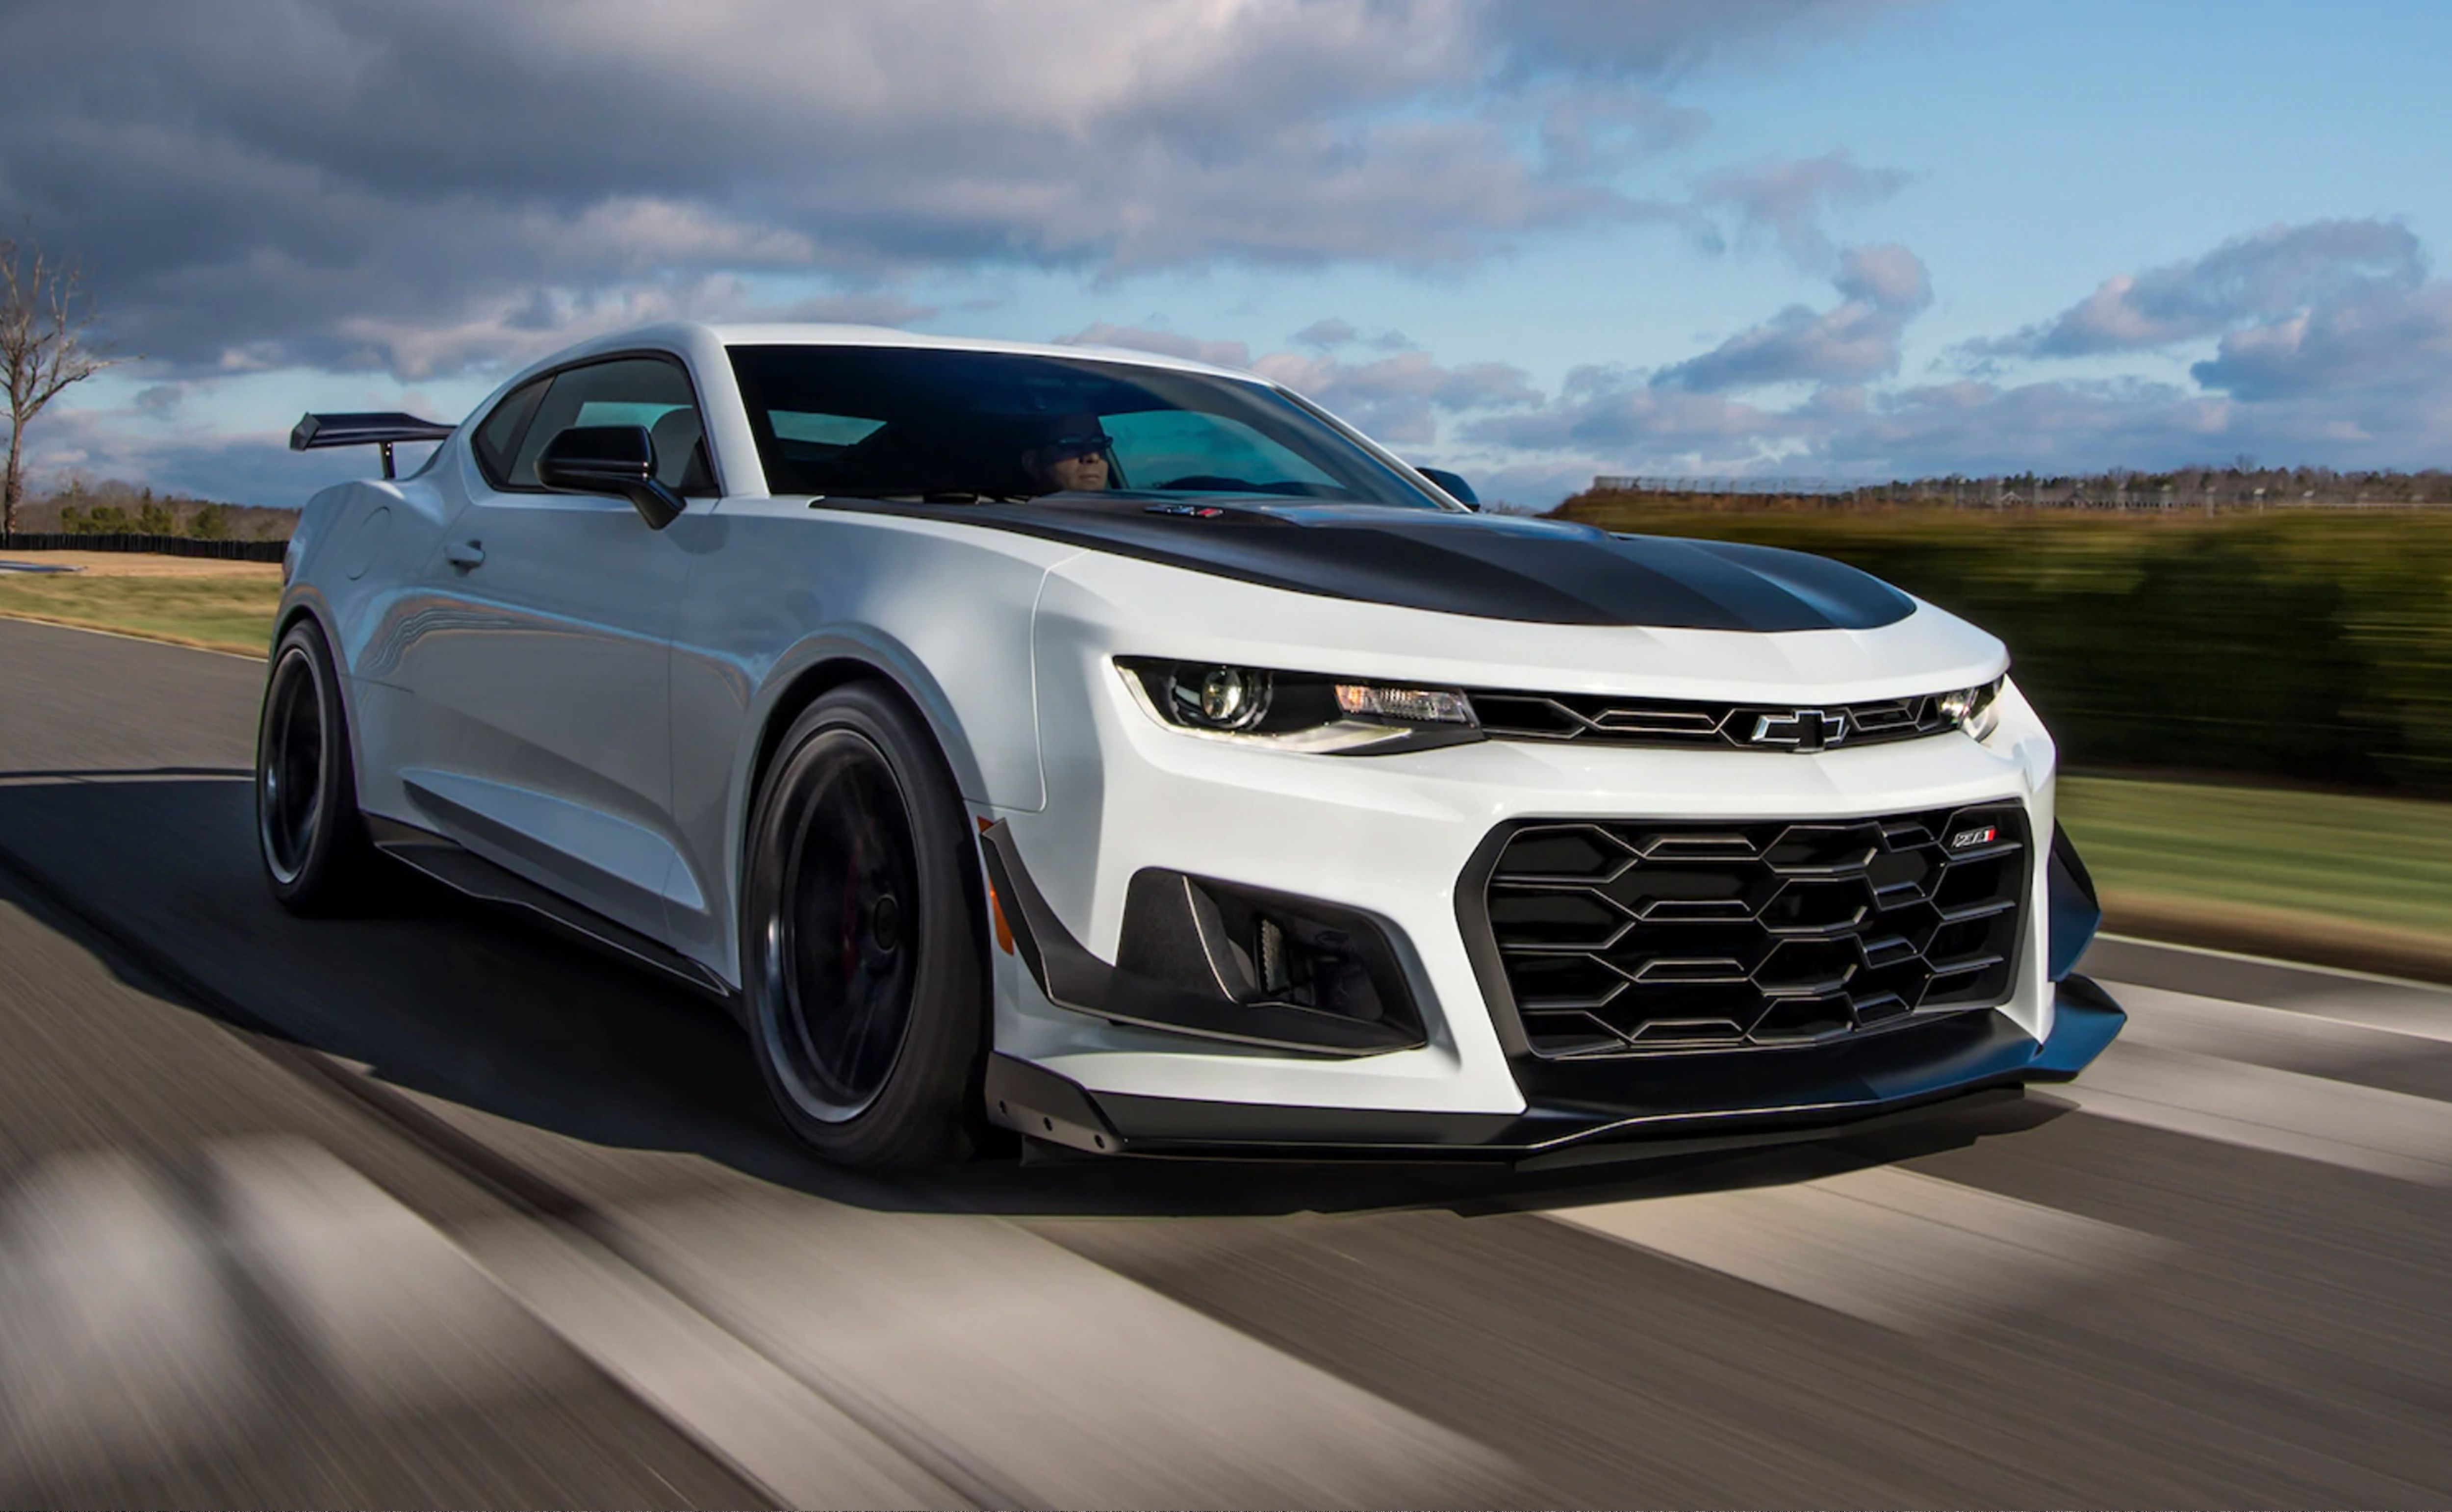 2021 Chevrolet Camaro Zl1 Review Pricing And Specs